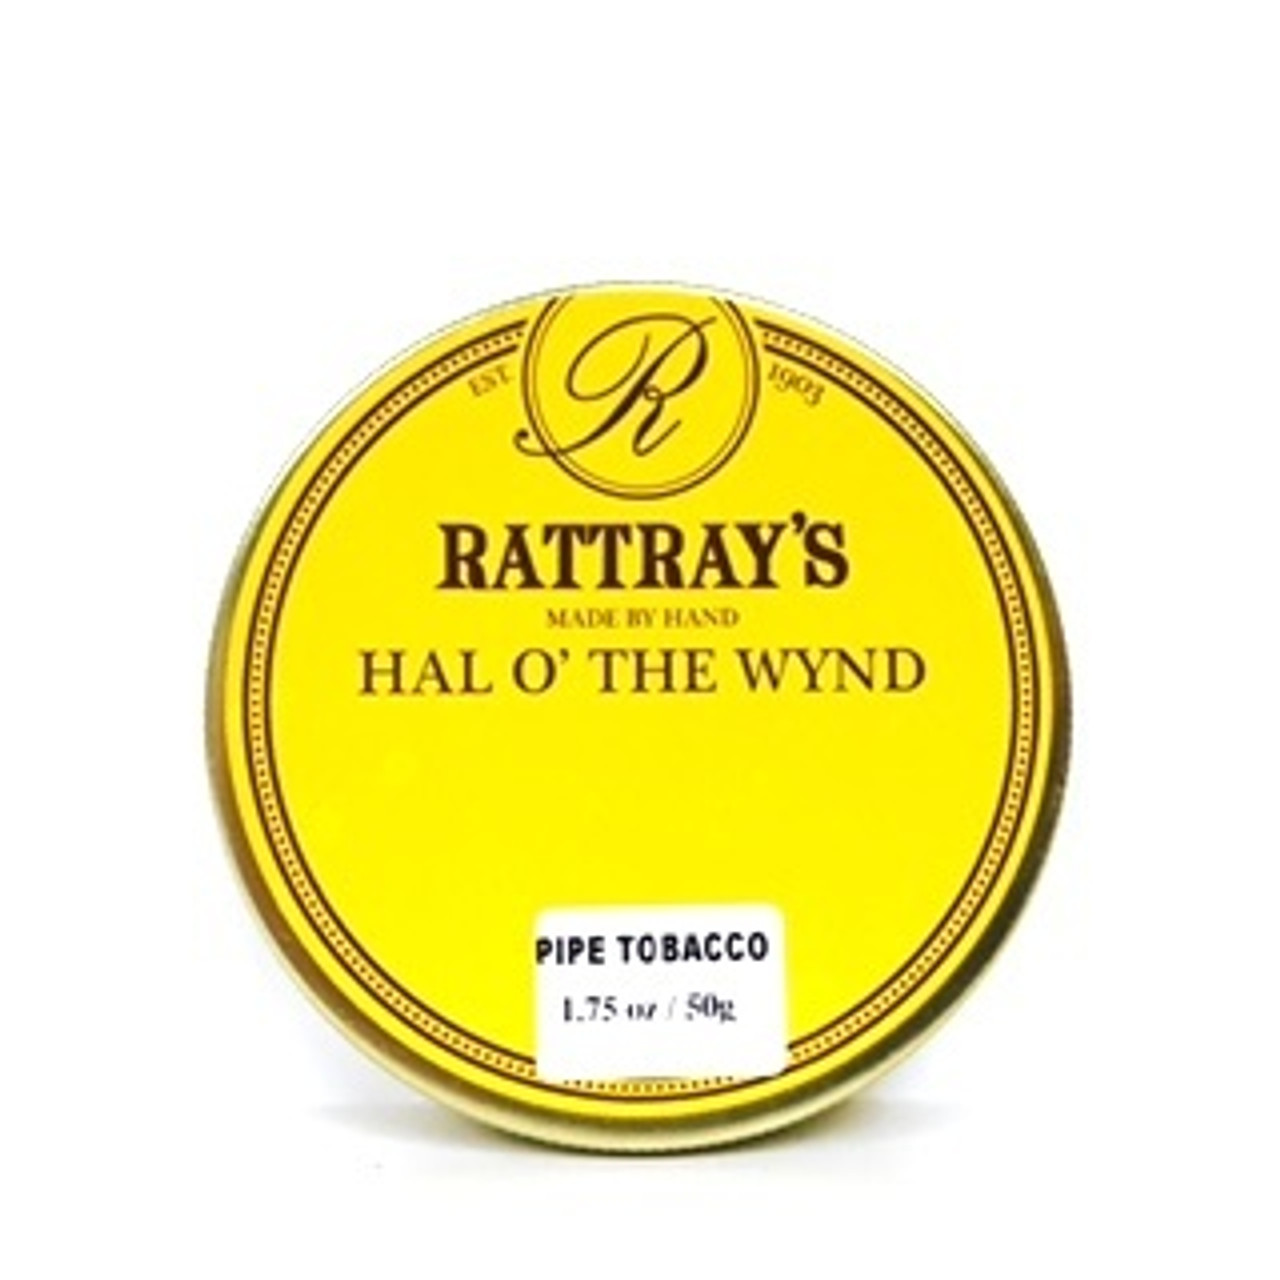 Rattray's Hal O' the Wynd Pipe Tobacco | 1.75 OZ TIN